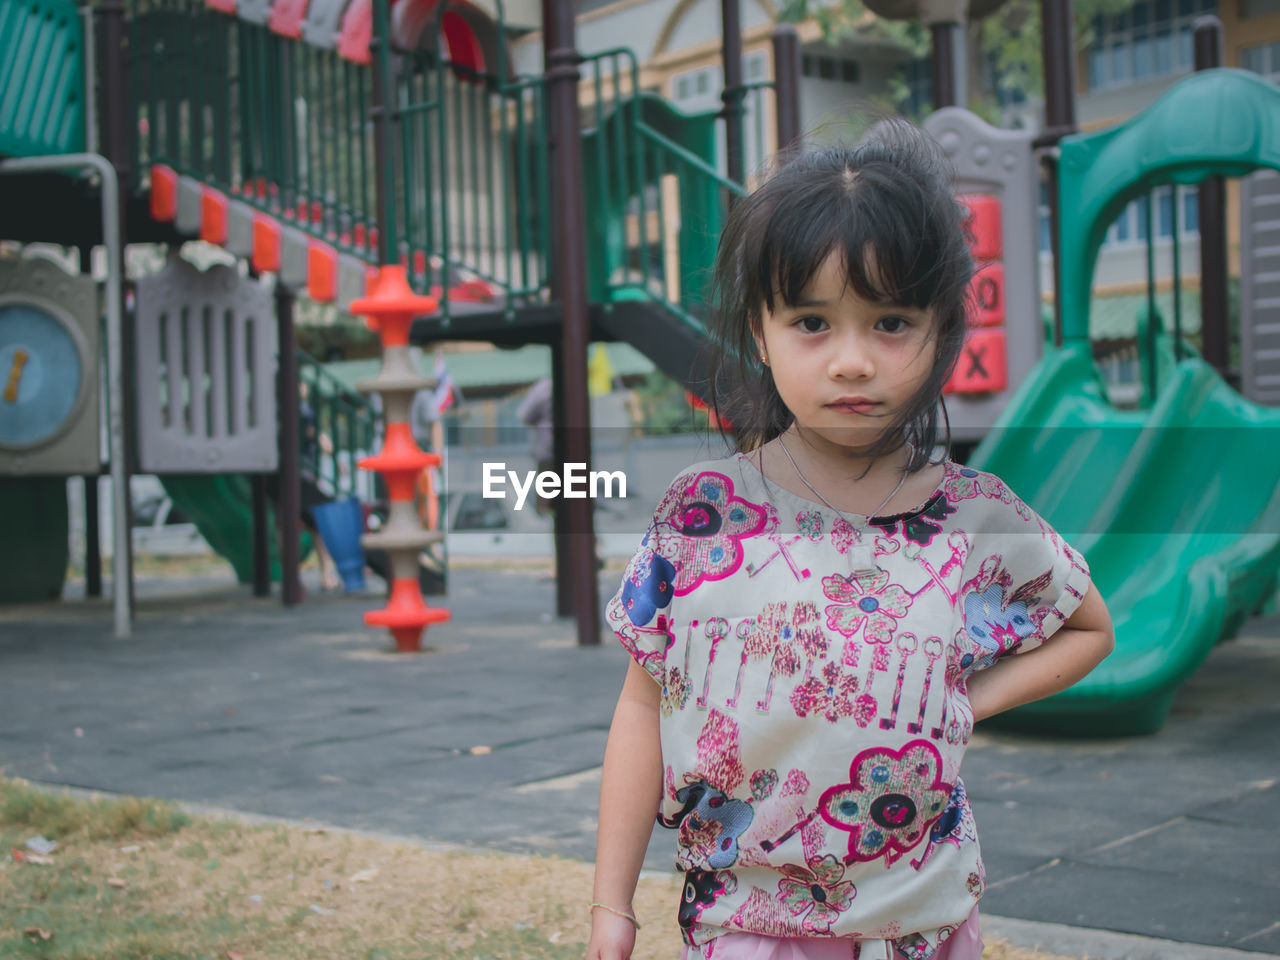 Portrait of cute girl standing against slide in playground